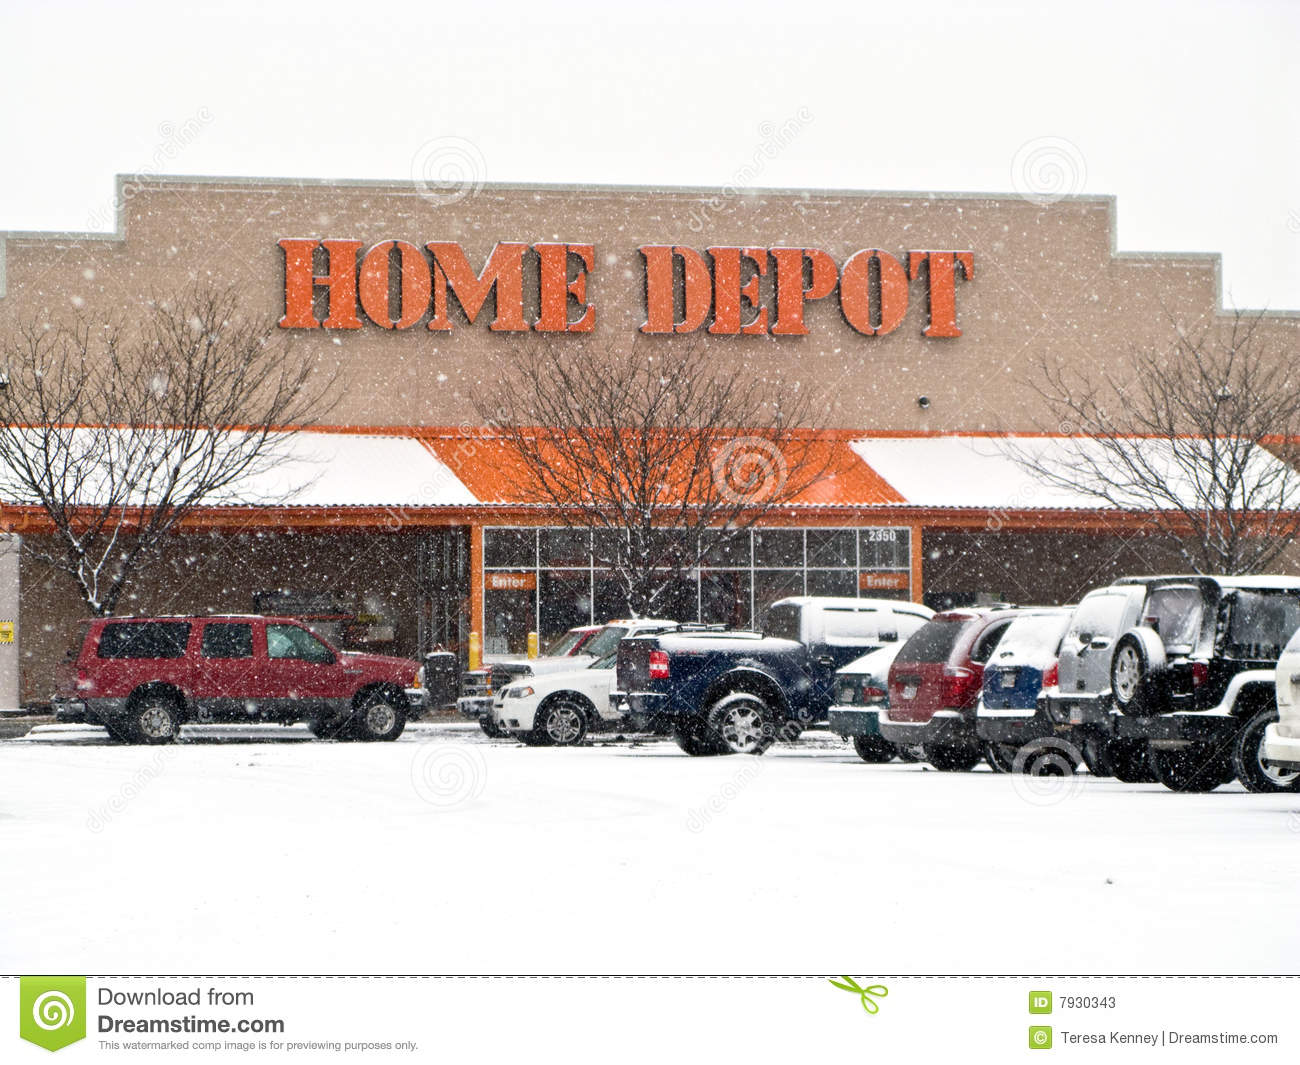 Home Depot Editorial Stock Photo - Image: 7930343